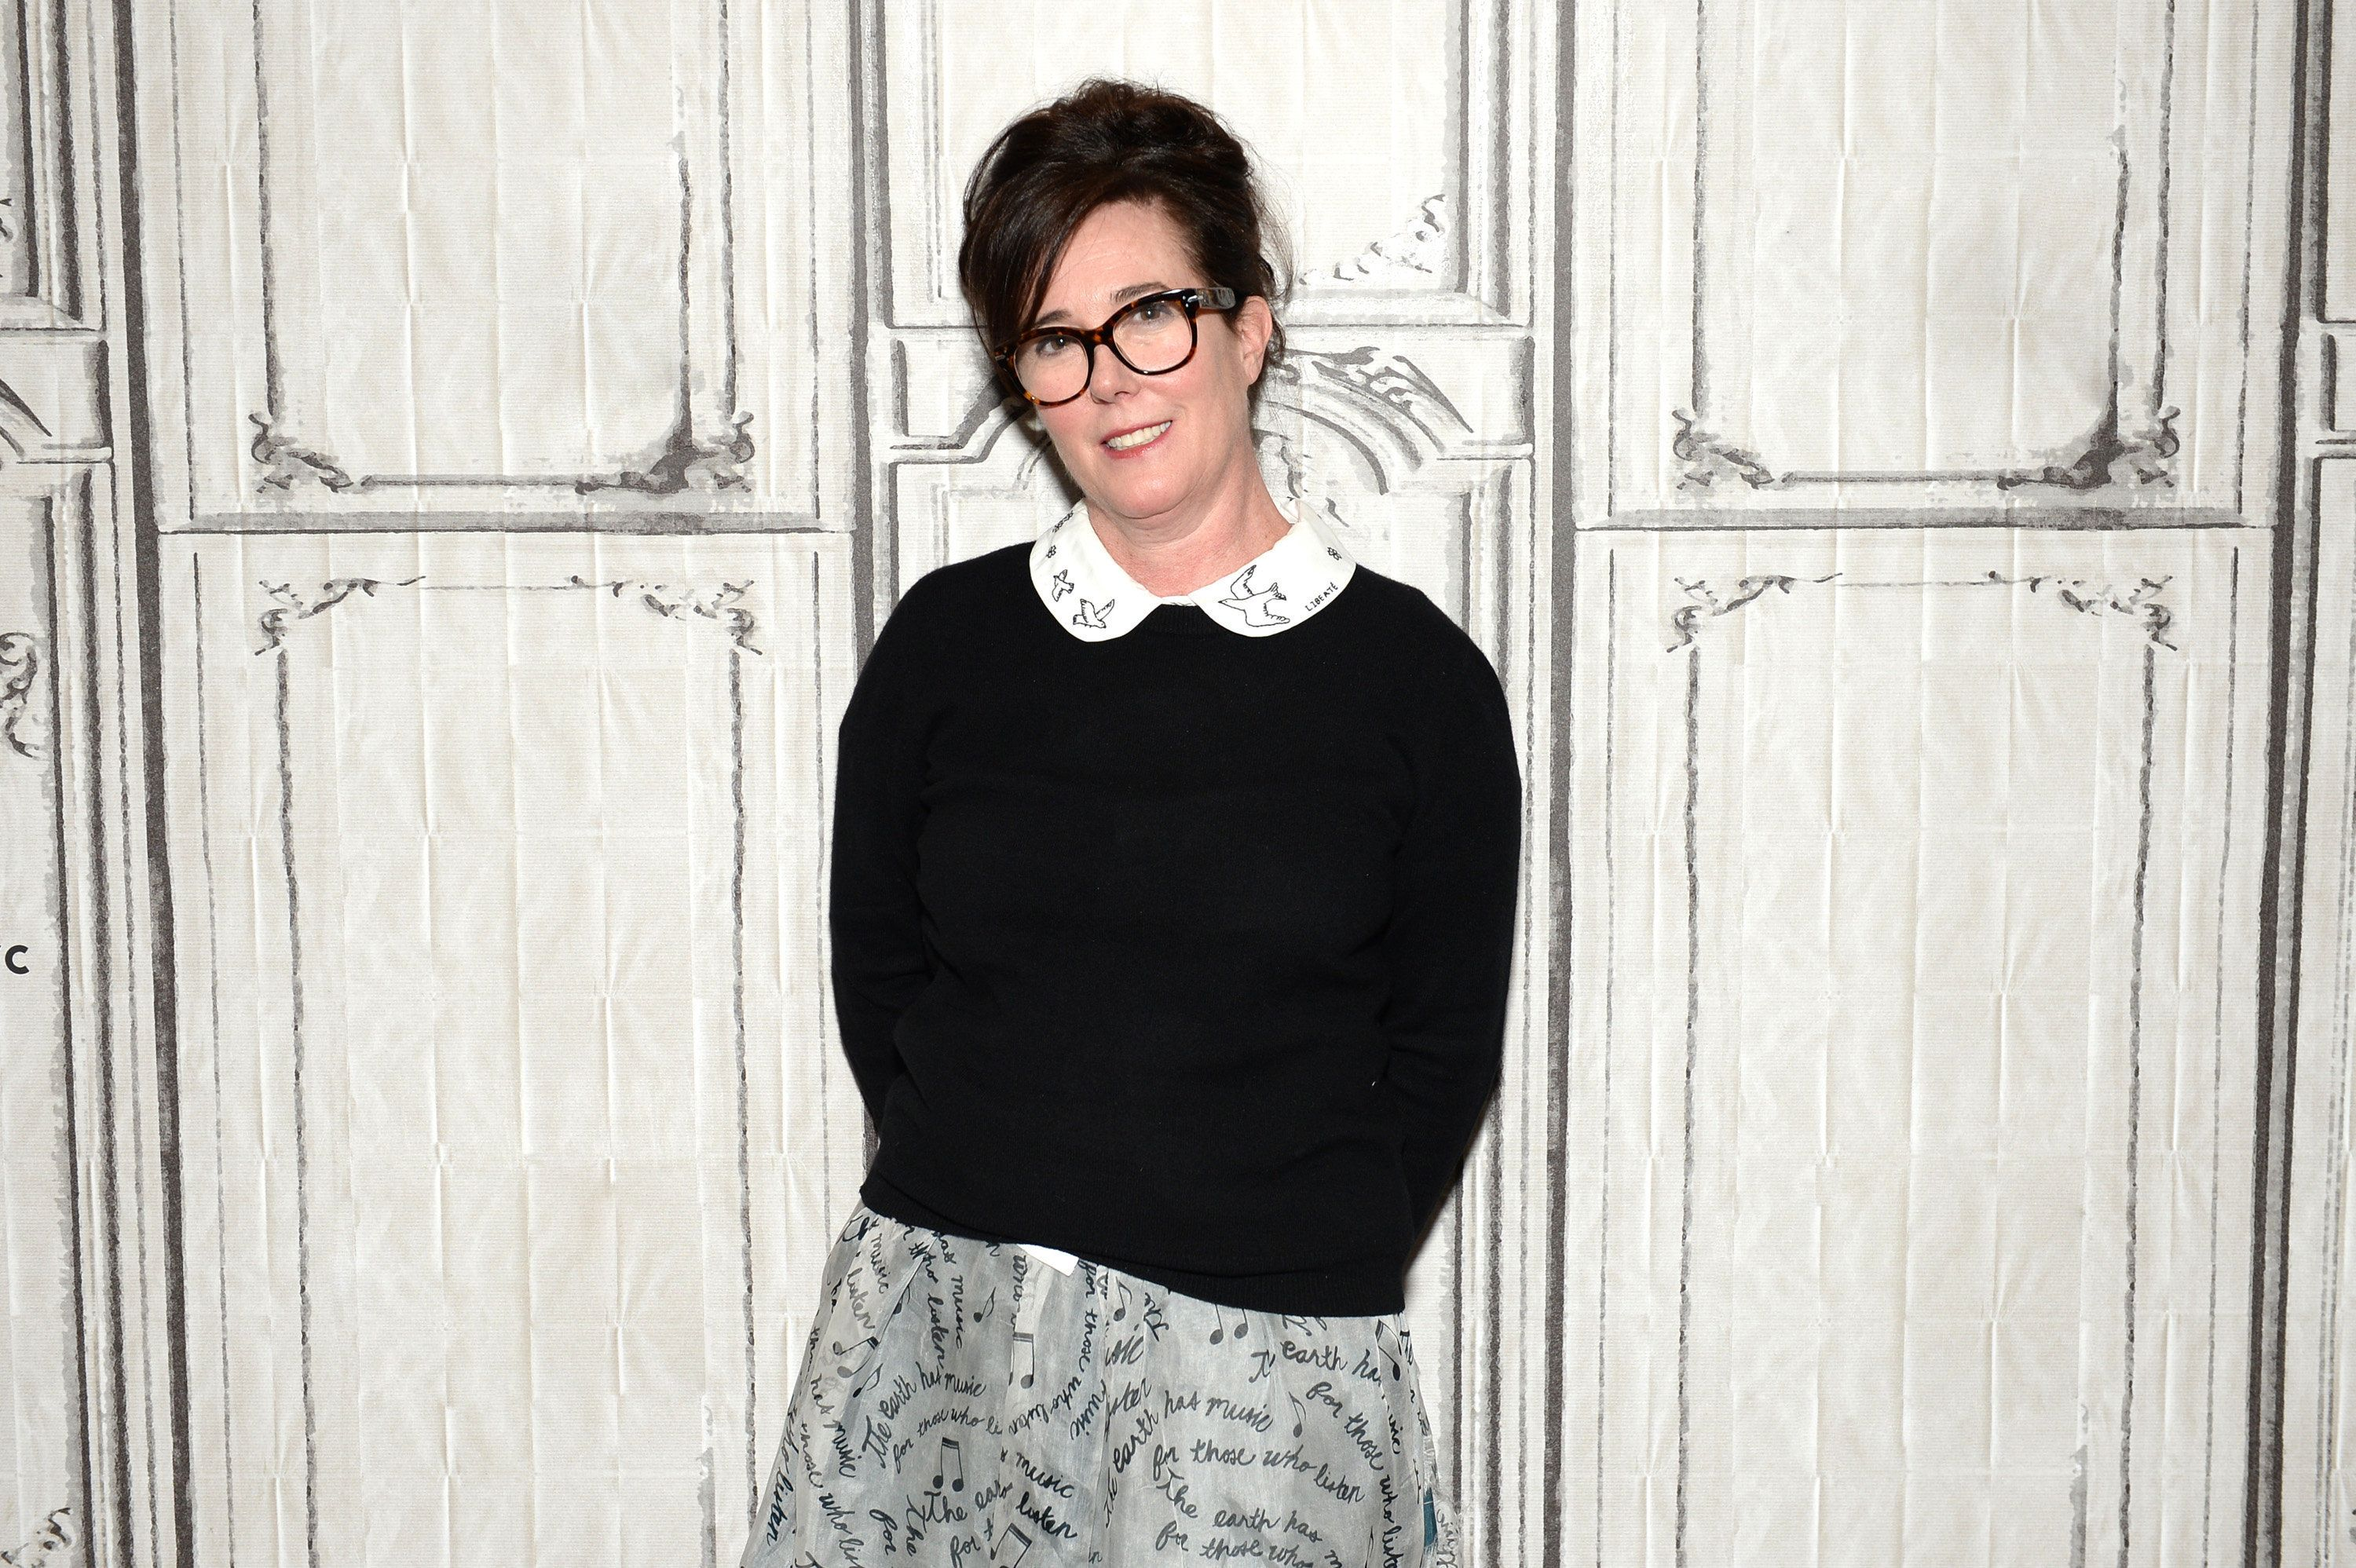 Kate Spade, who died by suicide at the age of